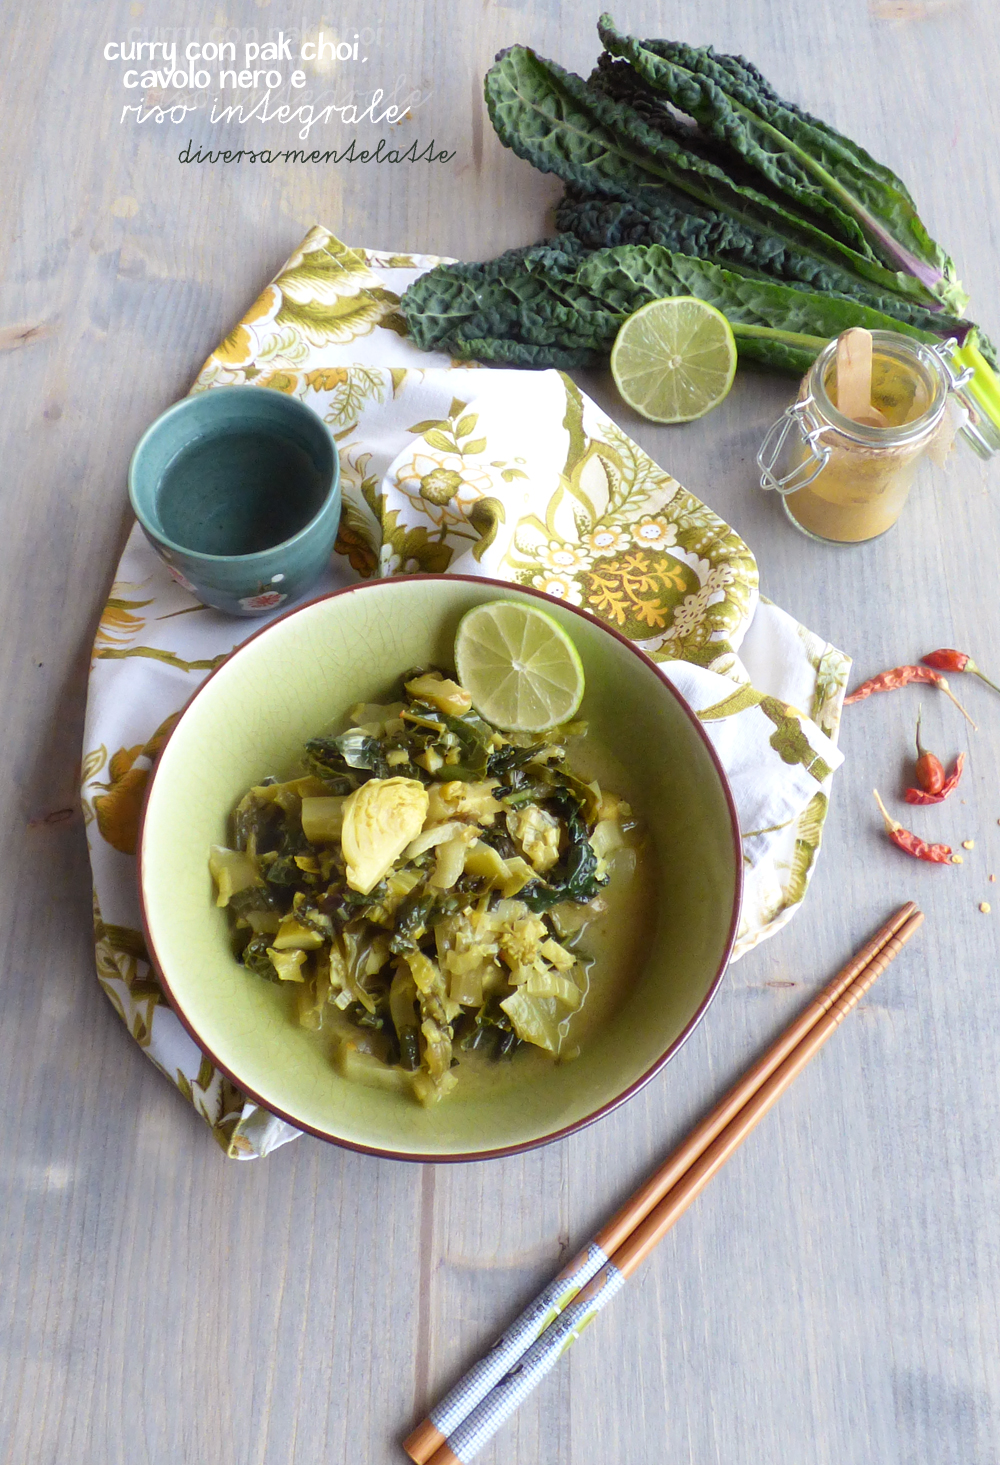 curry con pak choi cavolo nero e broccoli